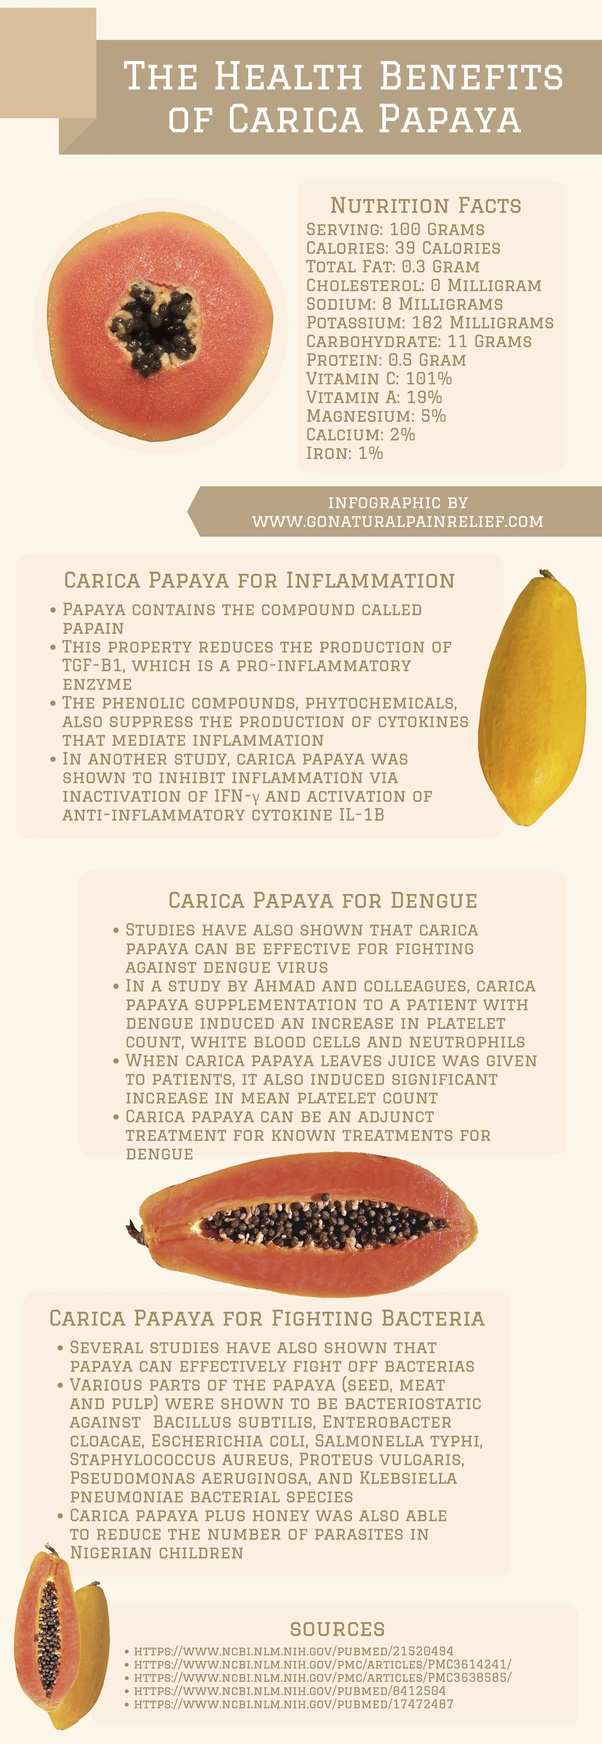 carica papaya leaves as treatment for